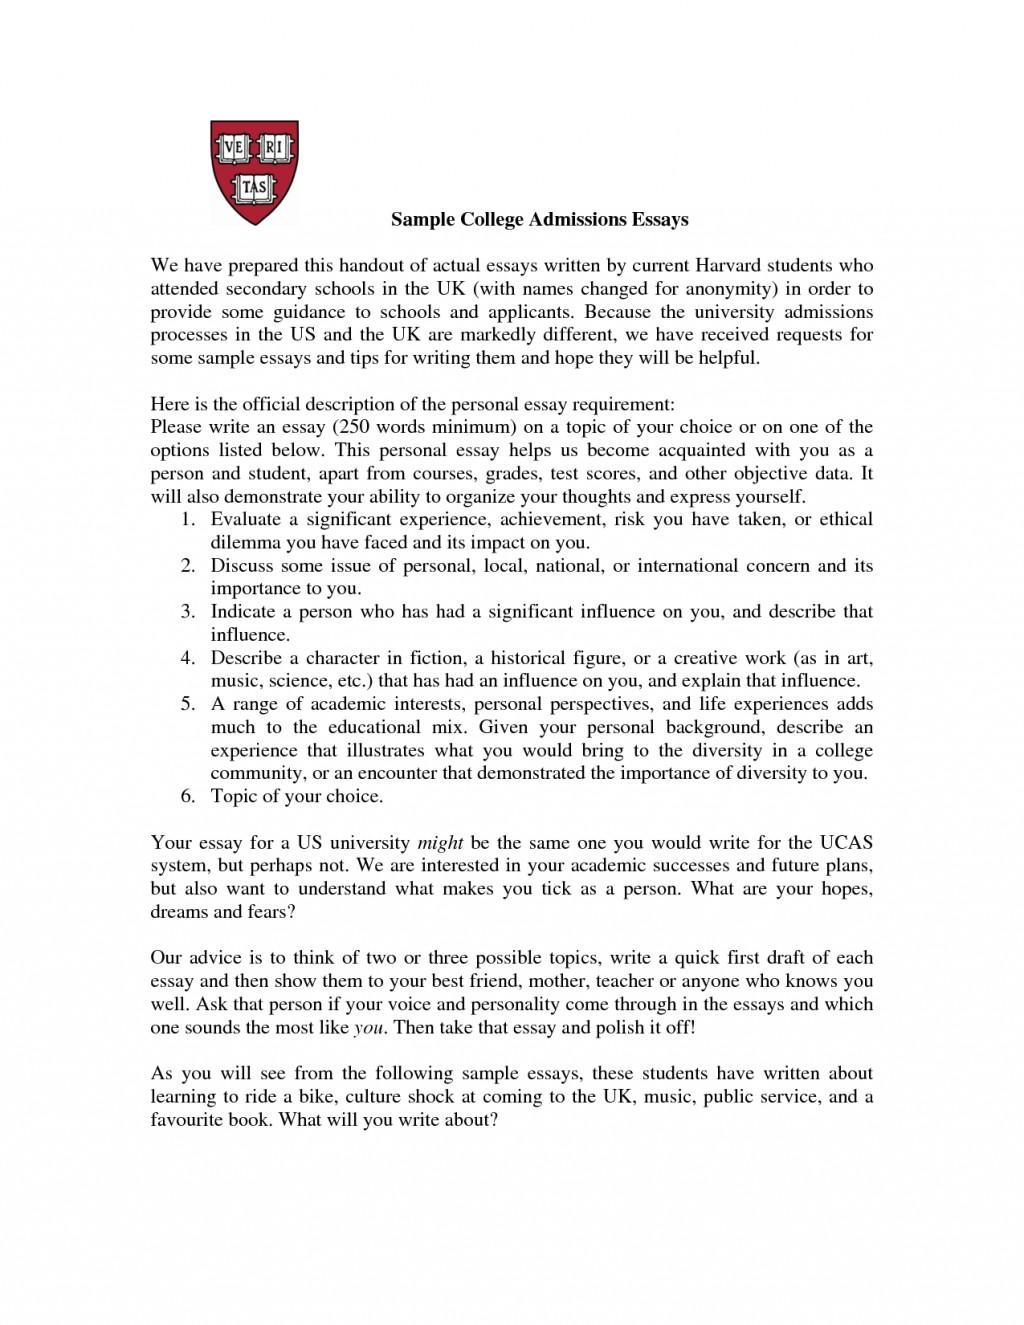 008 Essay Example Admission Impressive Examples High School About Yourself For Graduate College Free Large